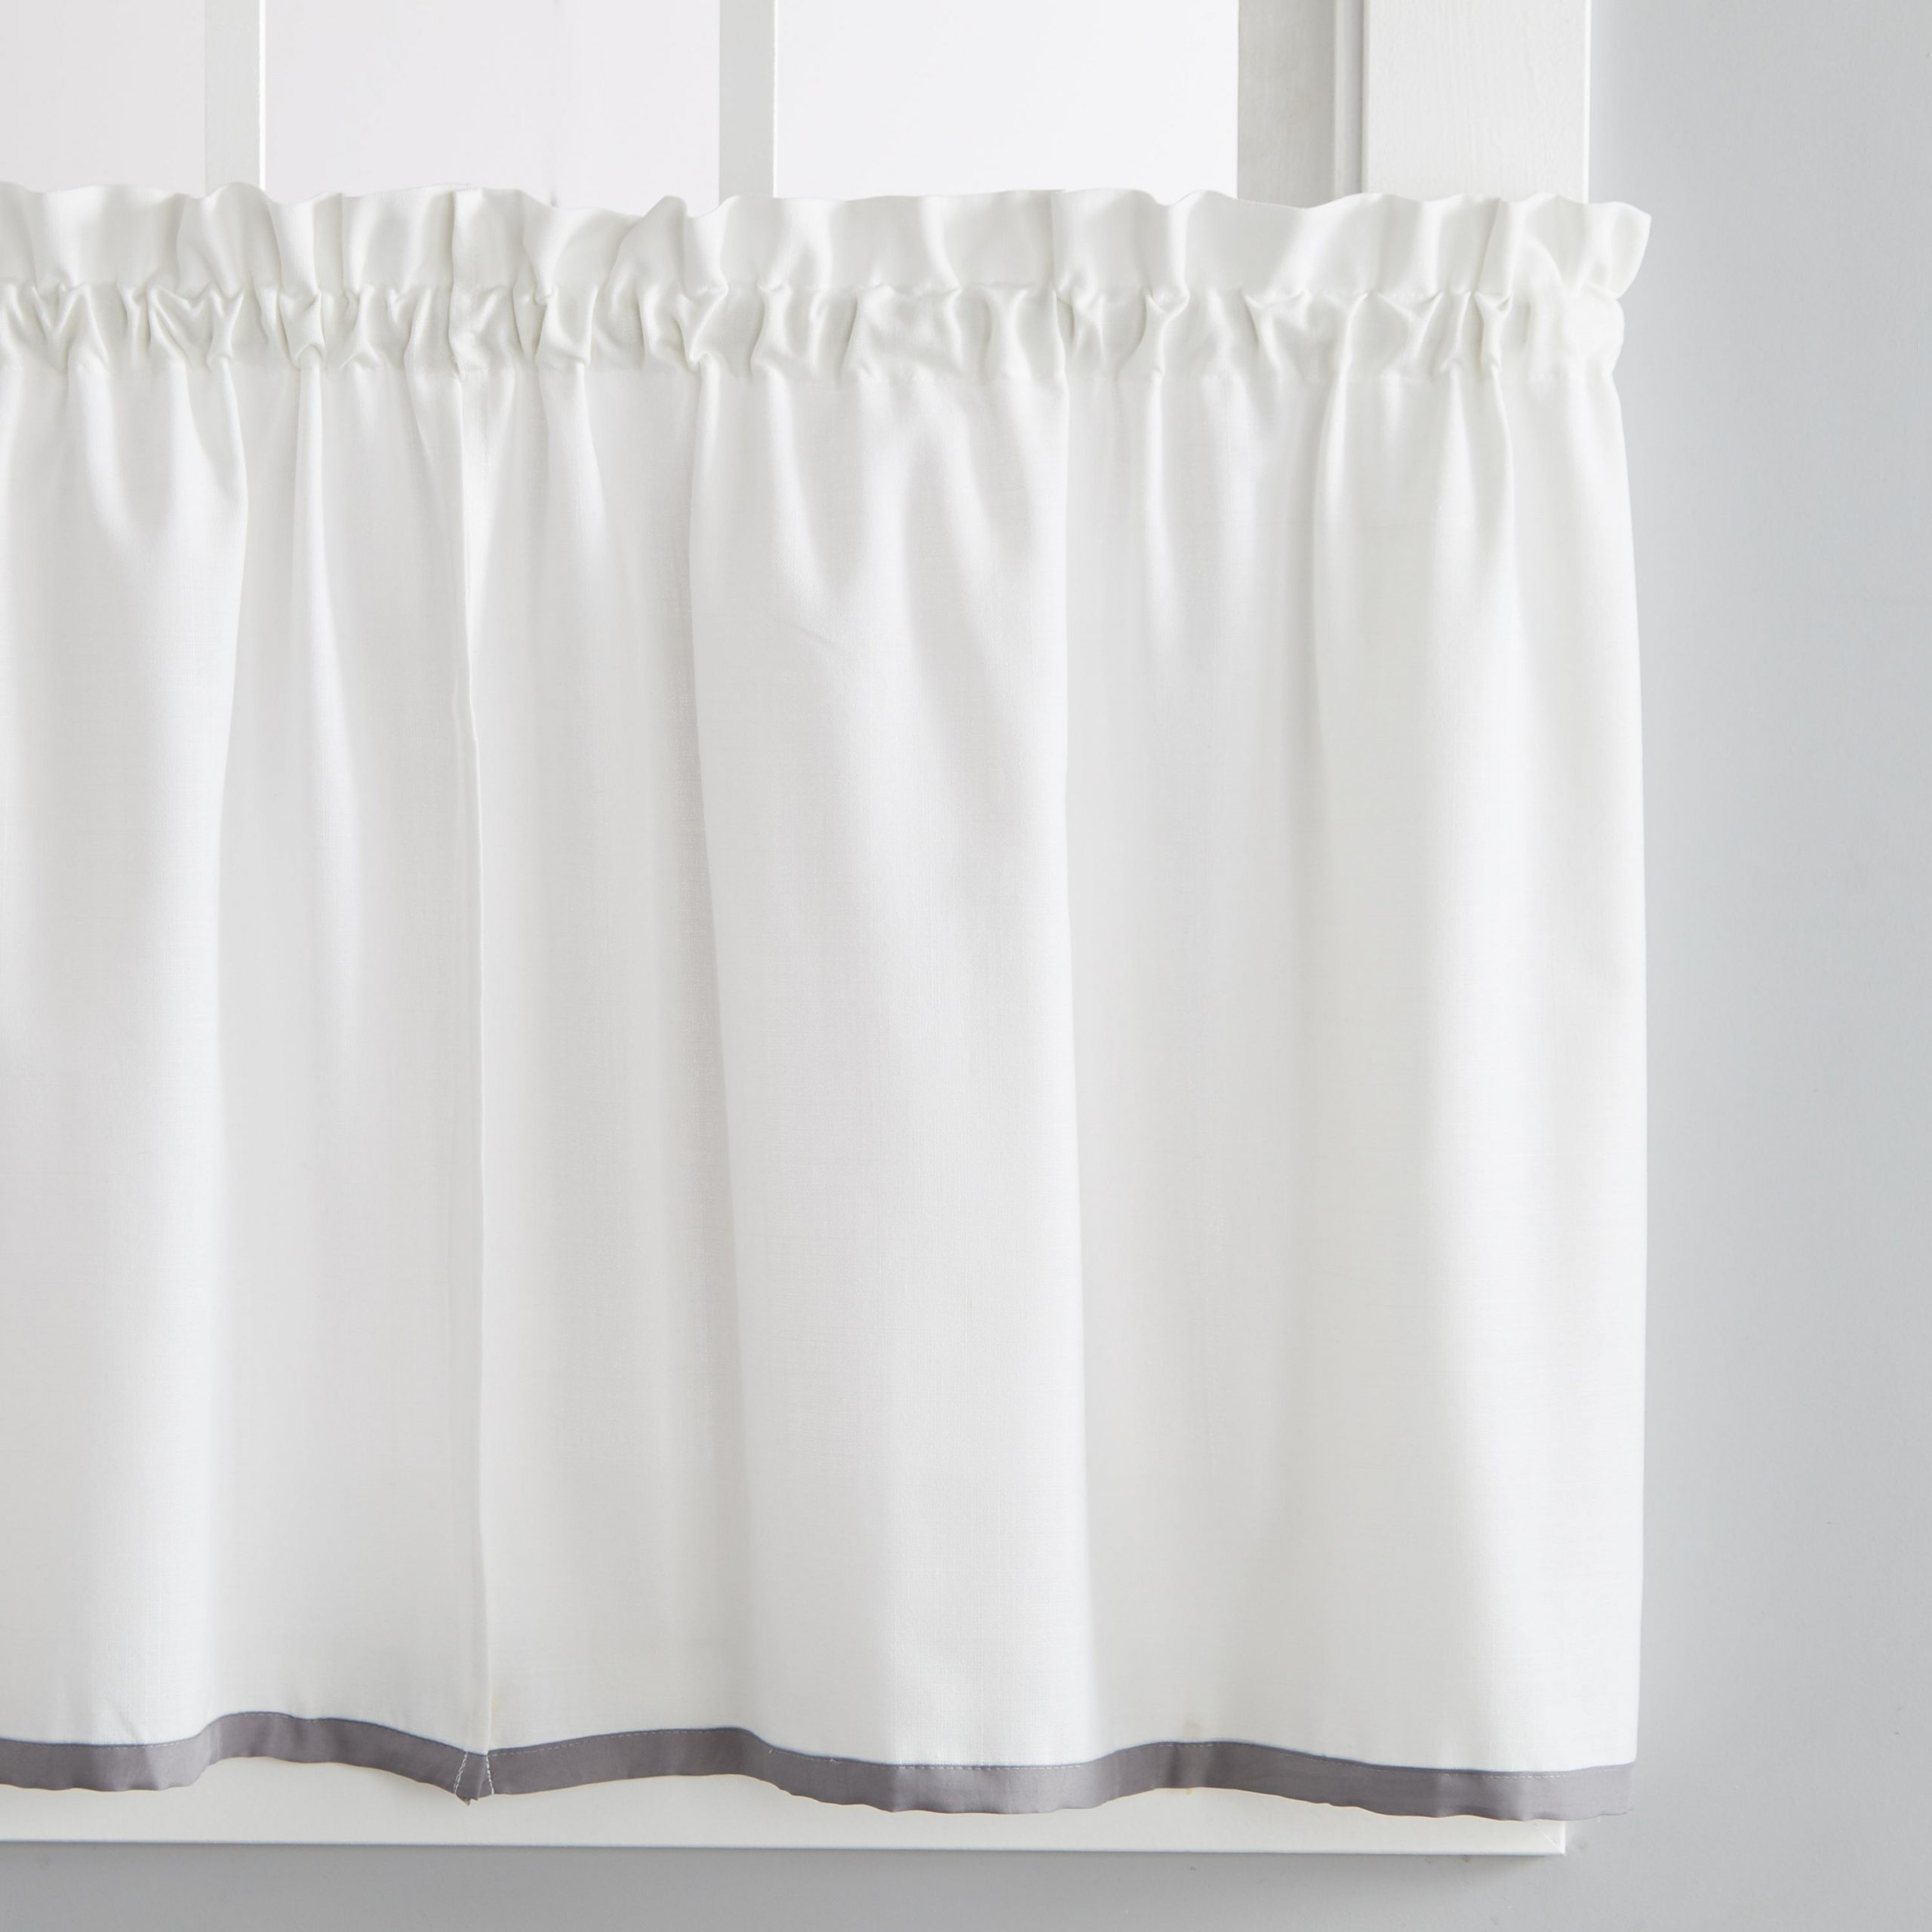 Dove Gray Curtain Tier Pairs For Most Recently Released Skl Home Manor 24 Inch Tier Pair In Dove Gray (View 2 of 20)